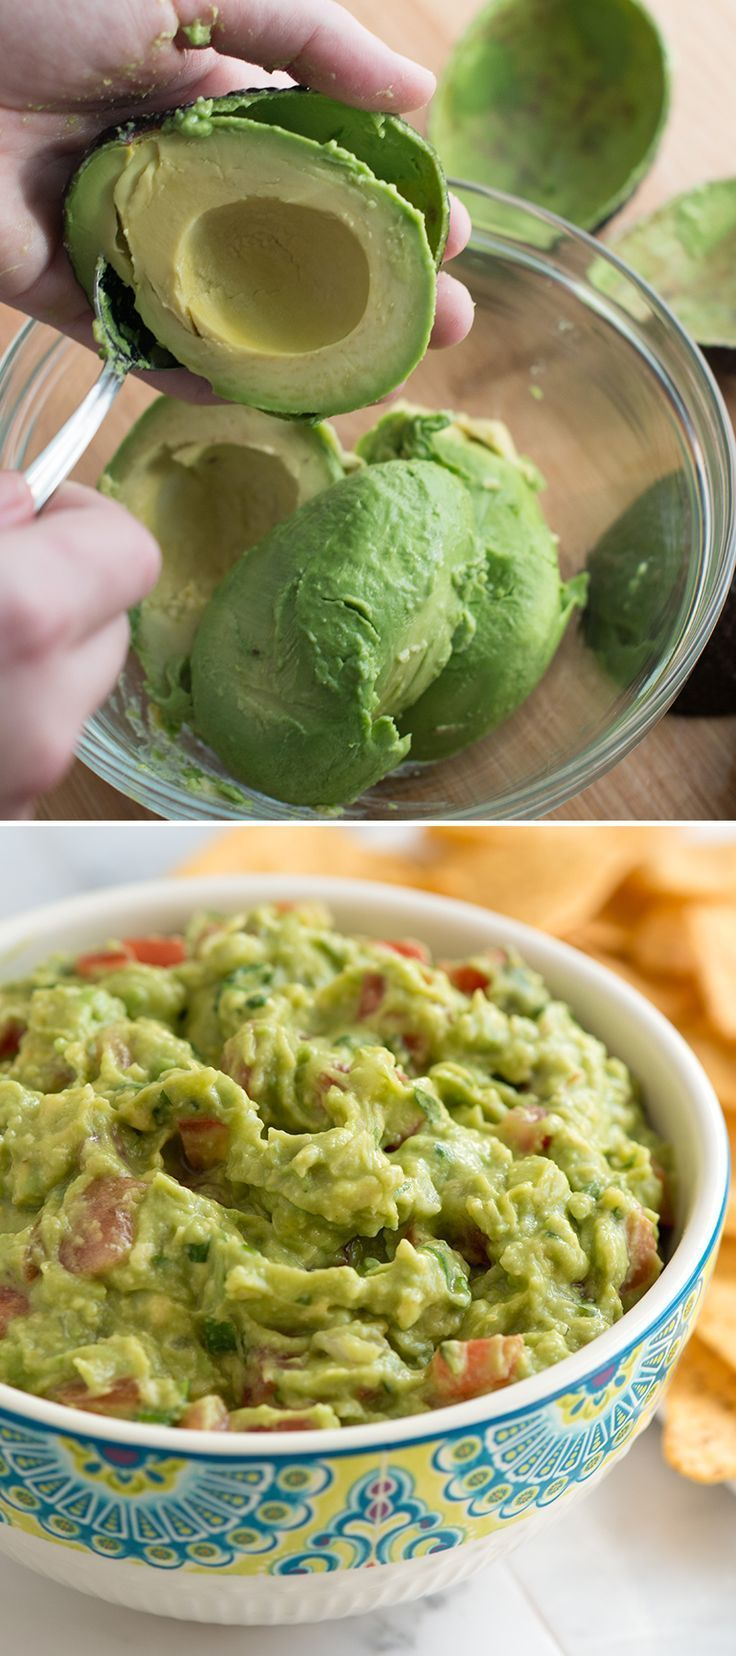 Our favorite guacamole recipe is easy, fresh and no matter what else we serve with it, is ALWAYS the first to go.